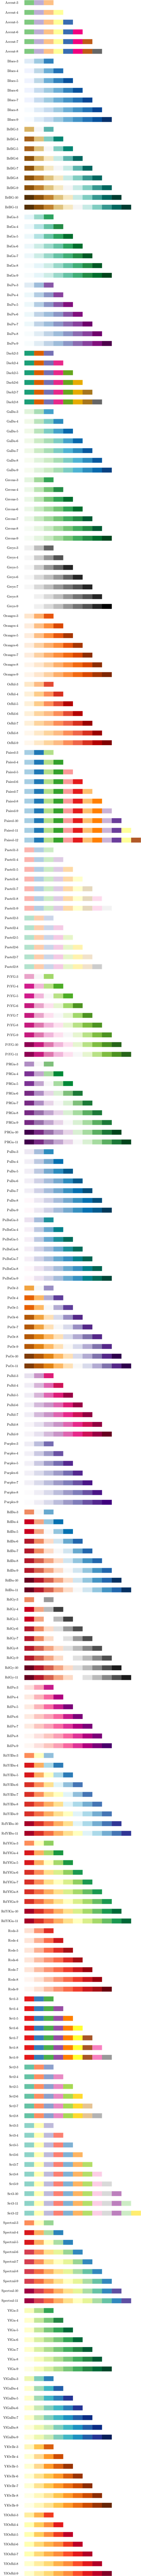 Overview of ColorBrewer colours.